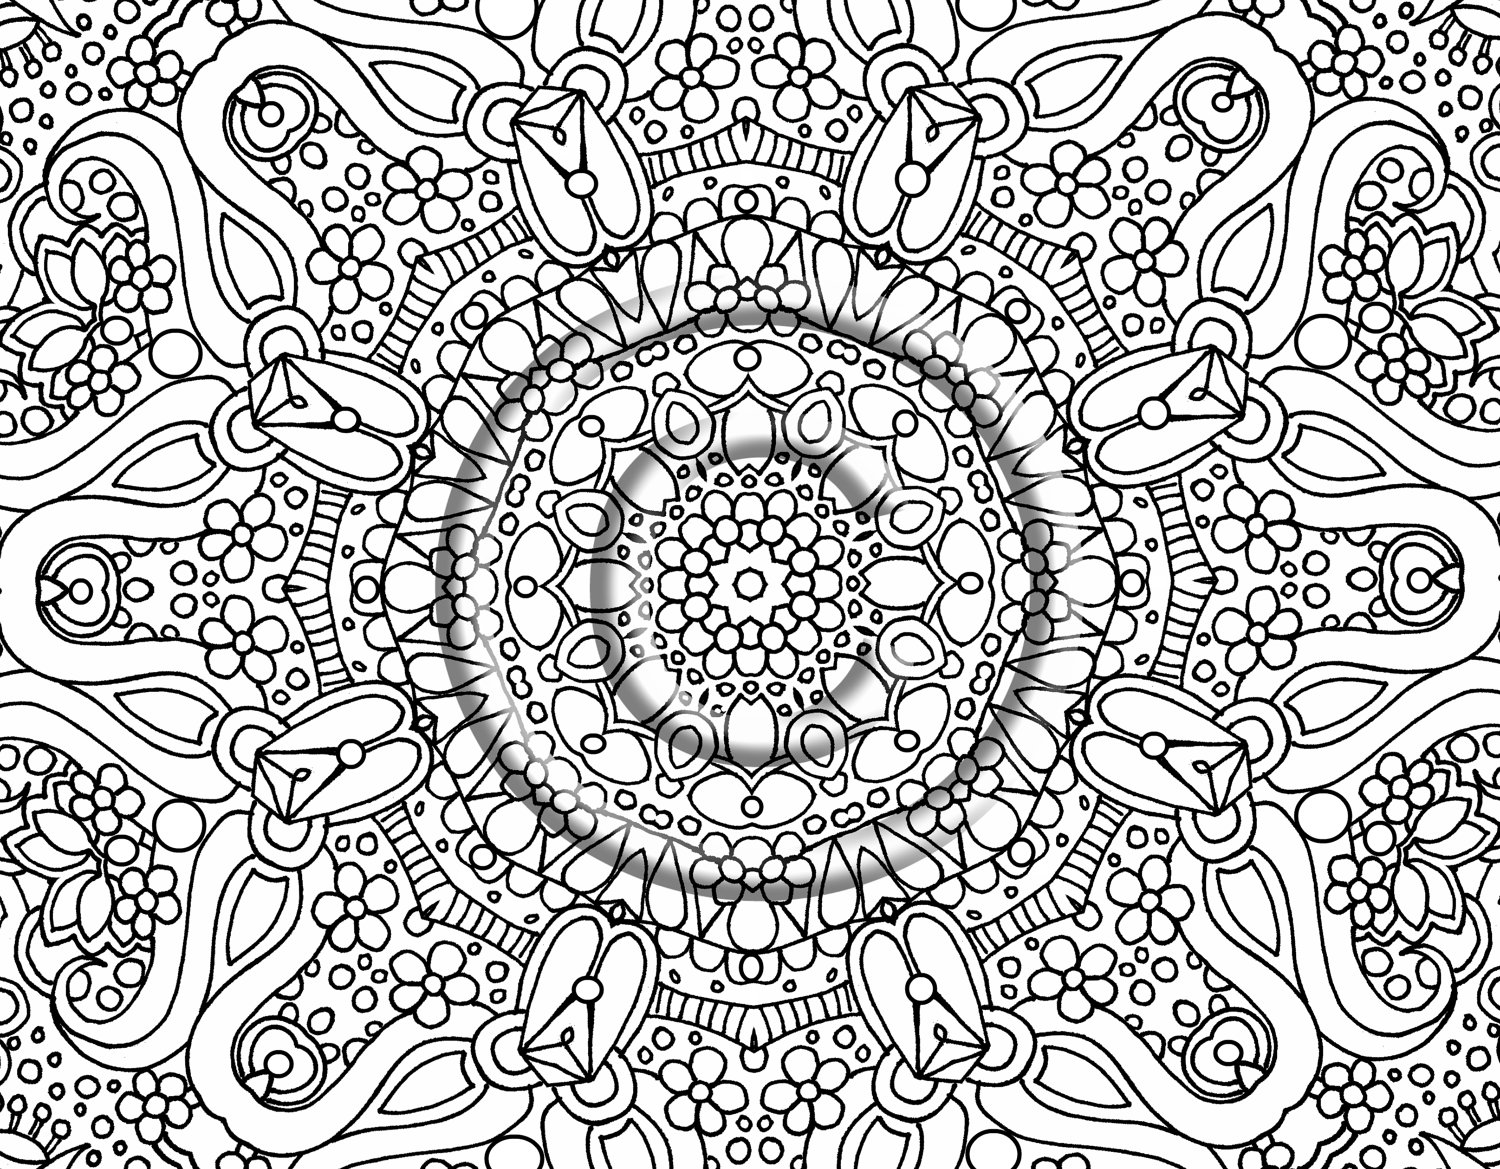 1500x1169 Coloring Pages Online For Adults Colouring In Amusing Print